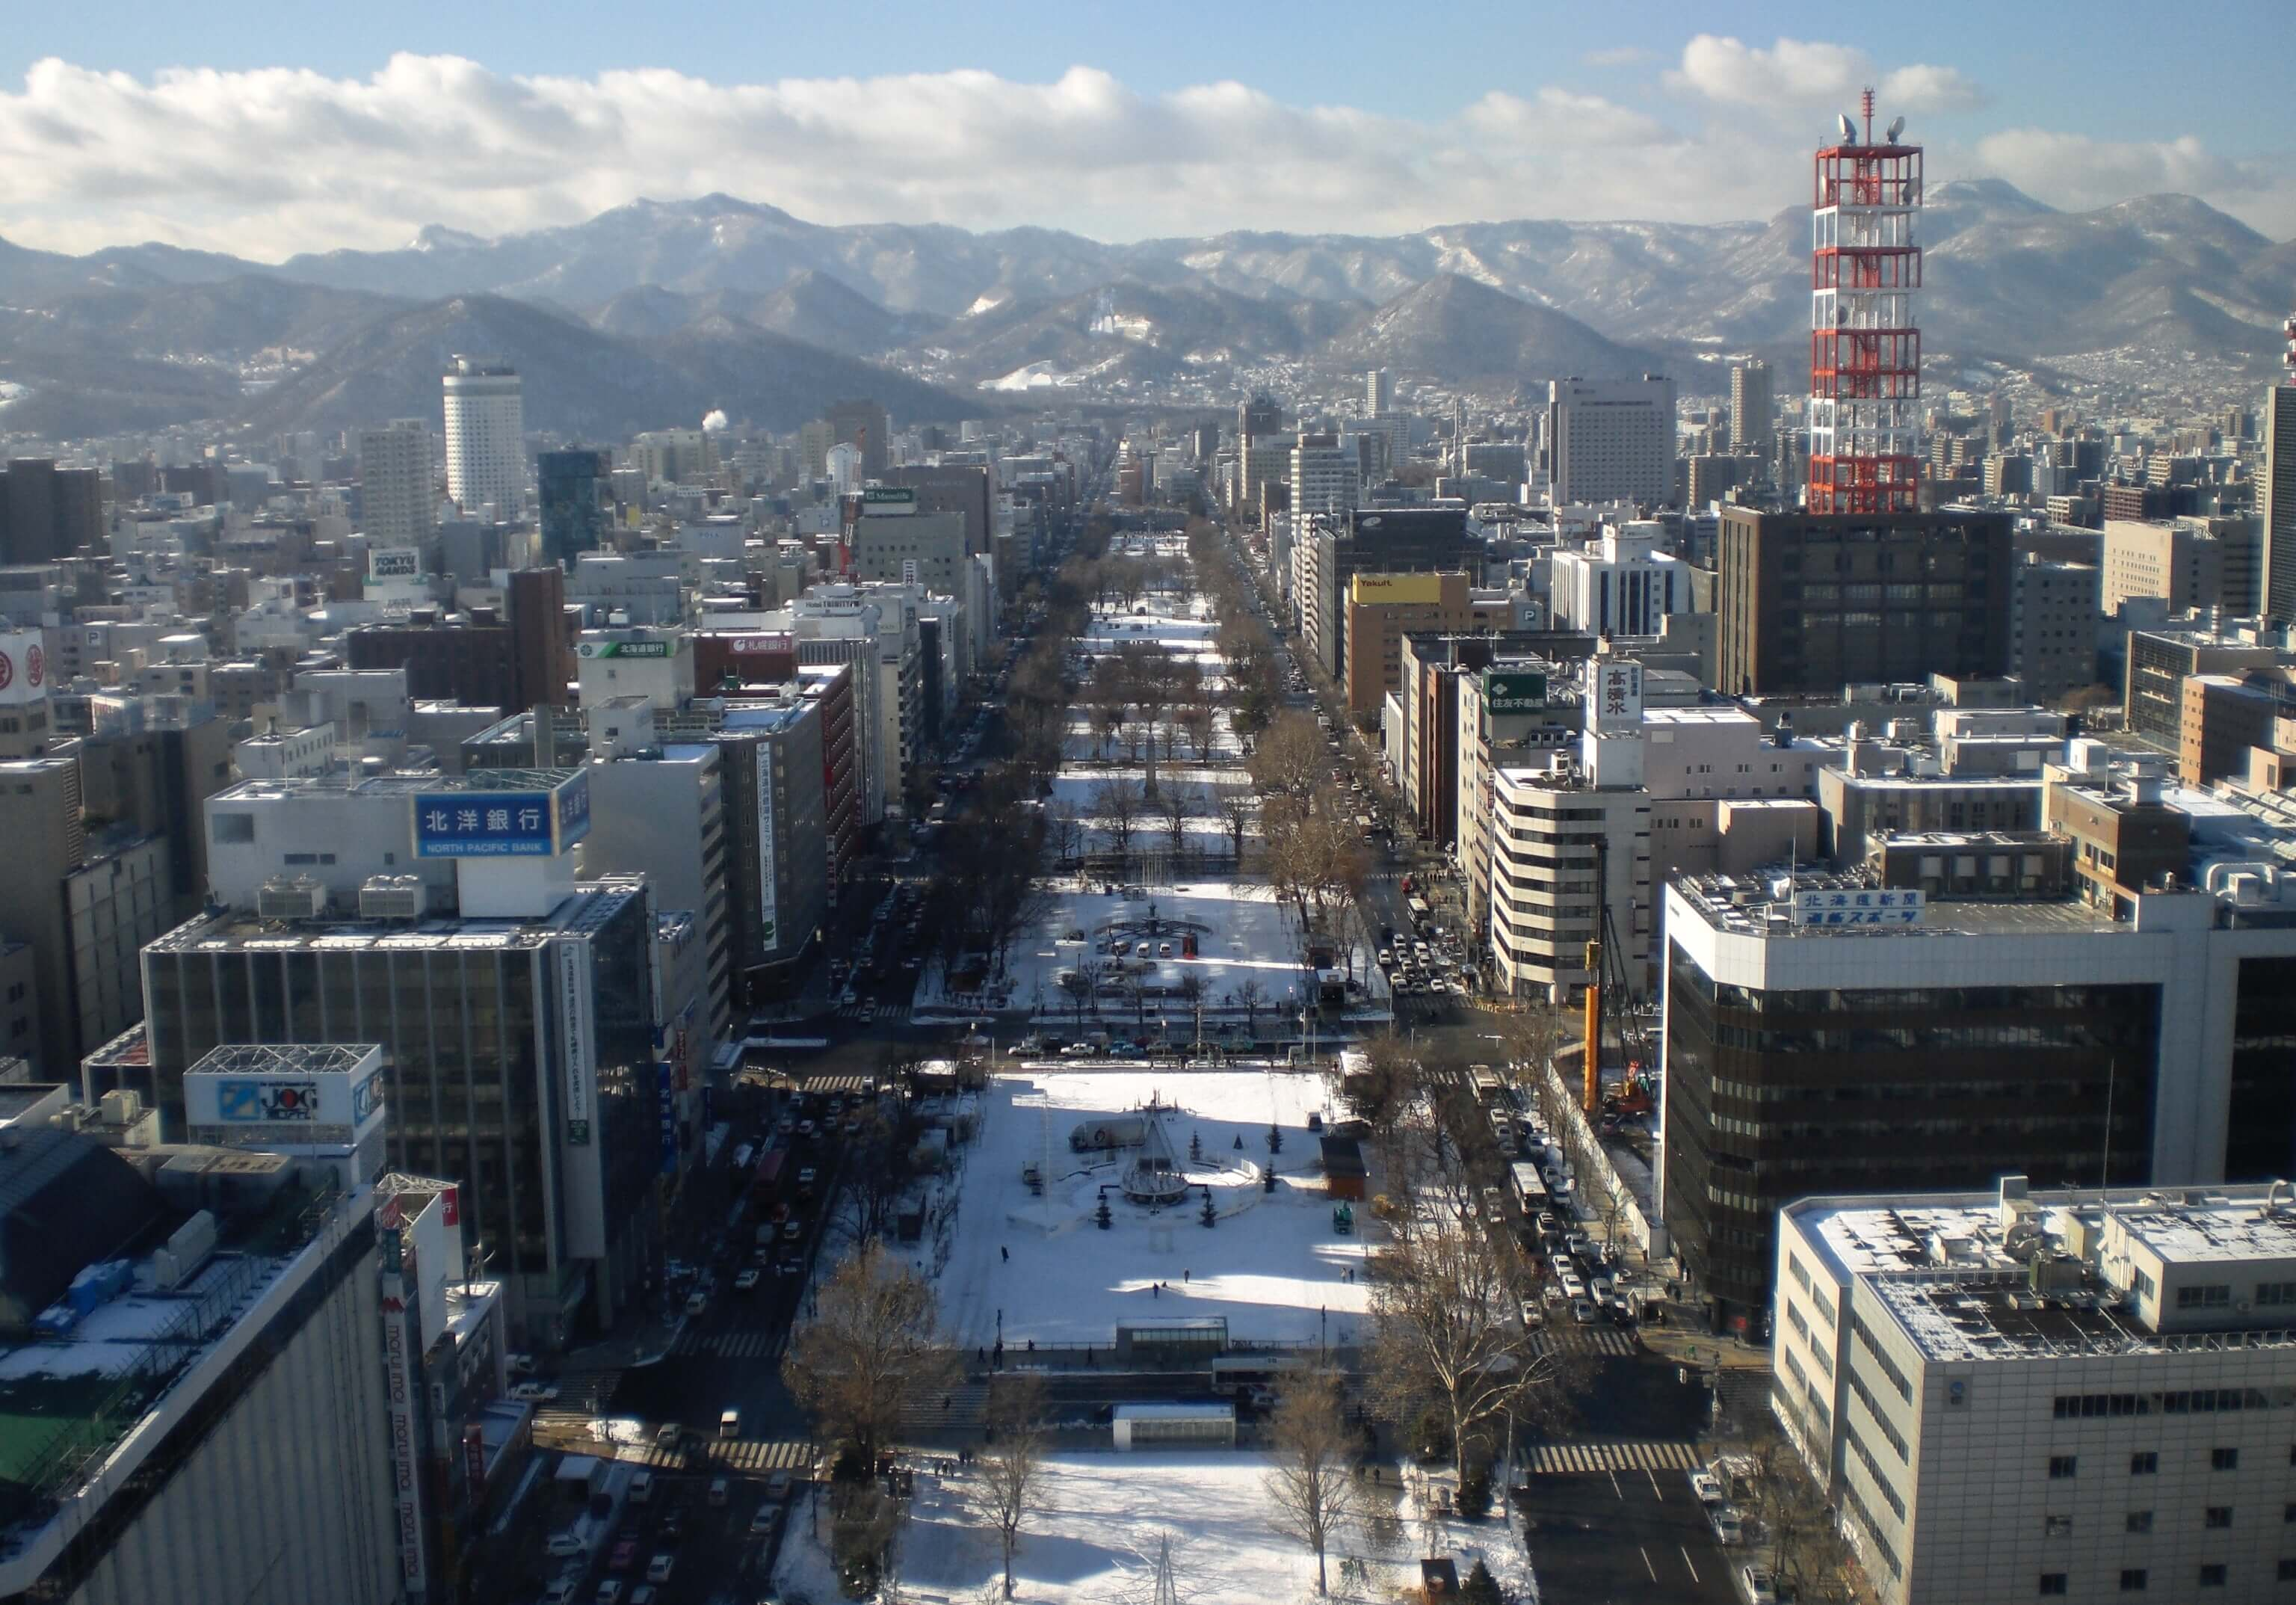 View of Odori Park from Sapporo TV Tower